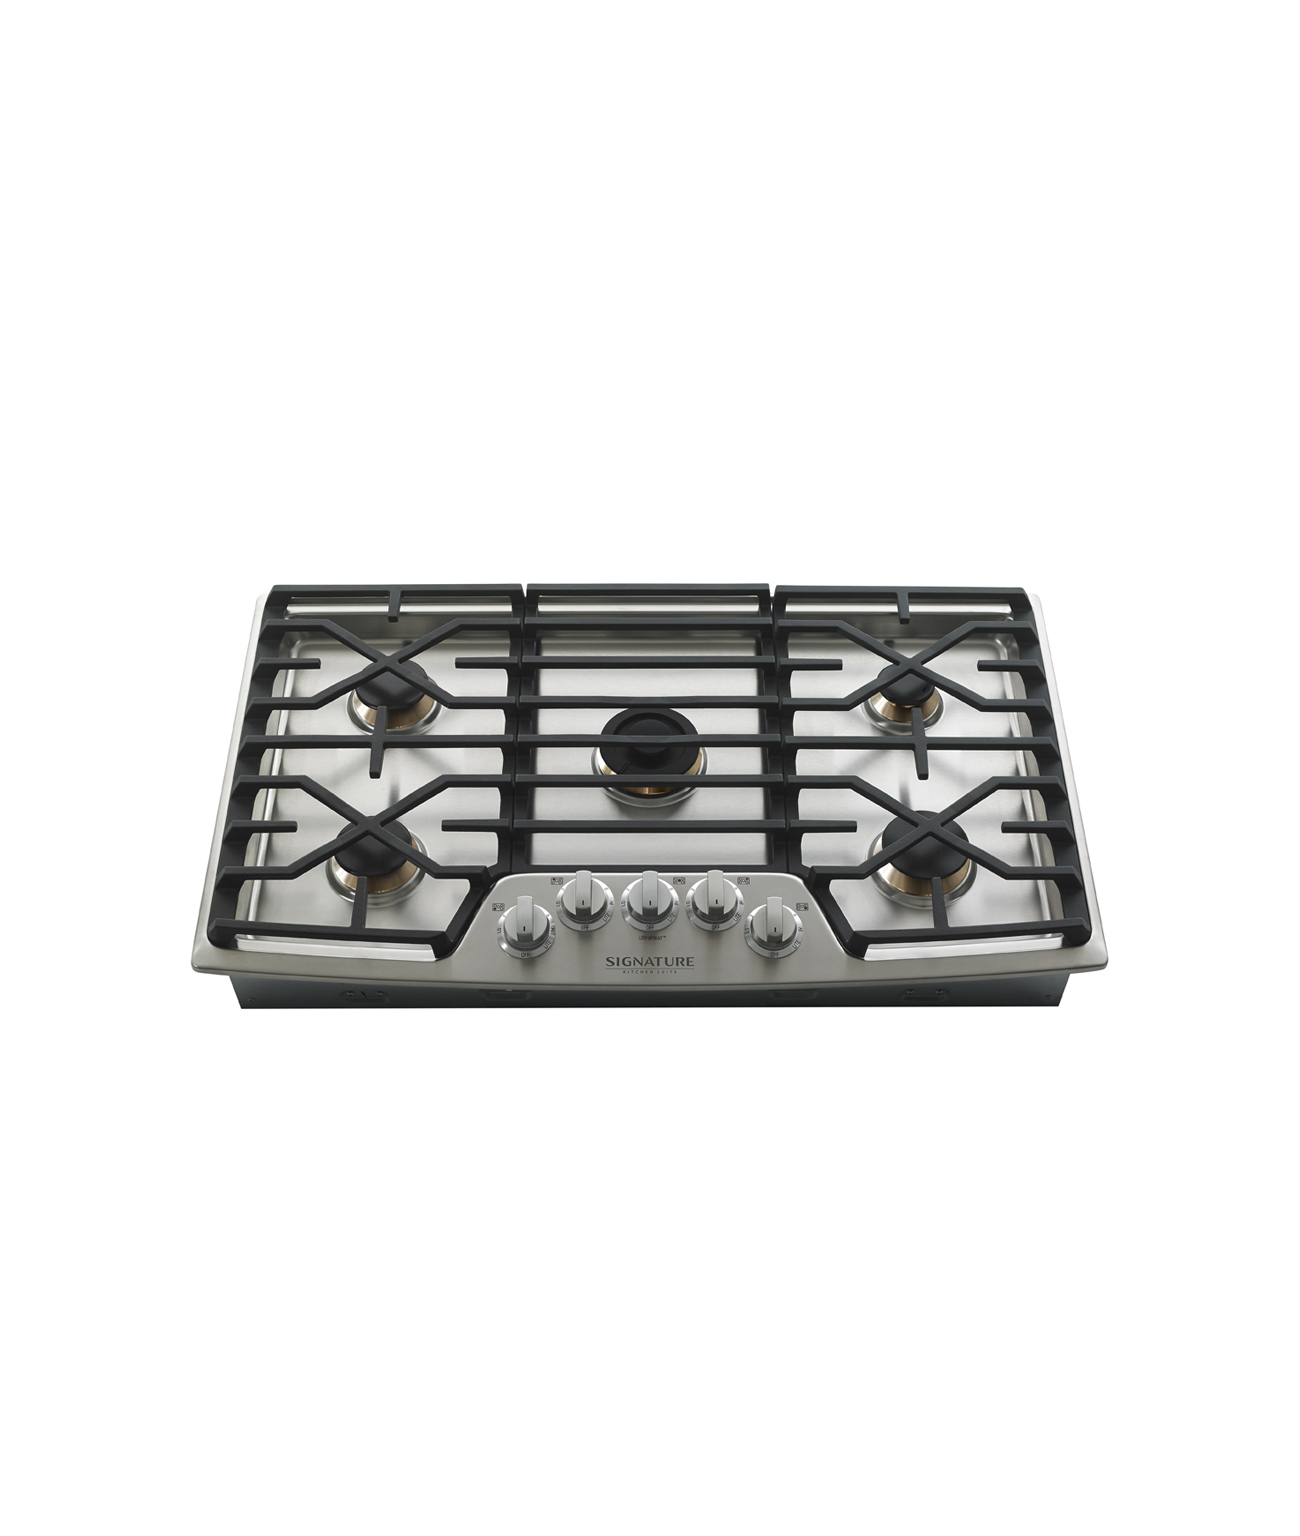 30 inch gas cooktop signature kitchen suite